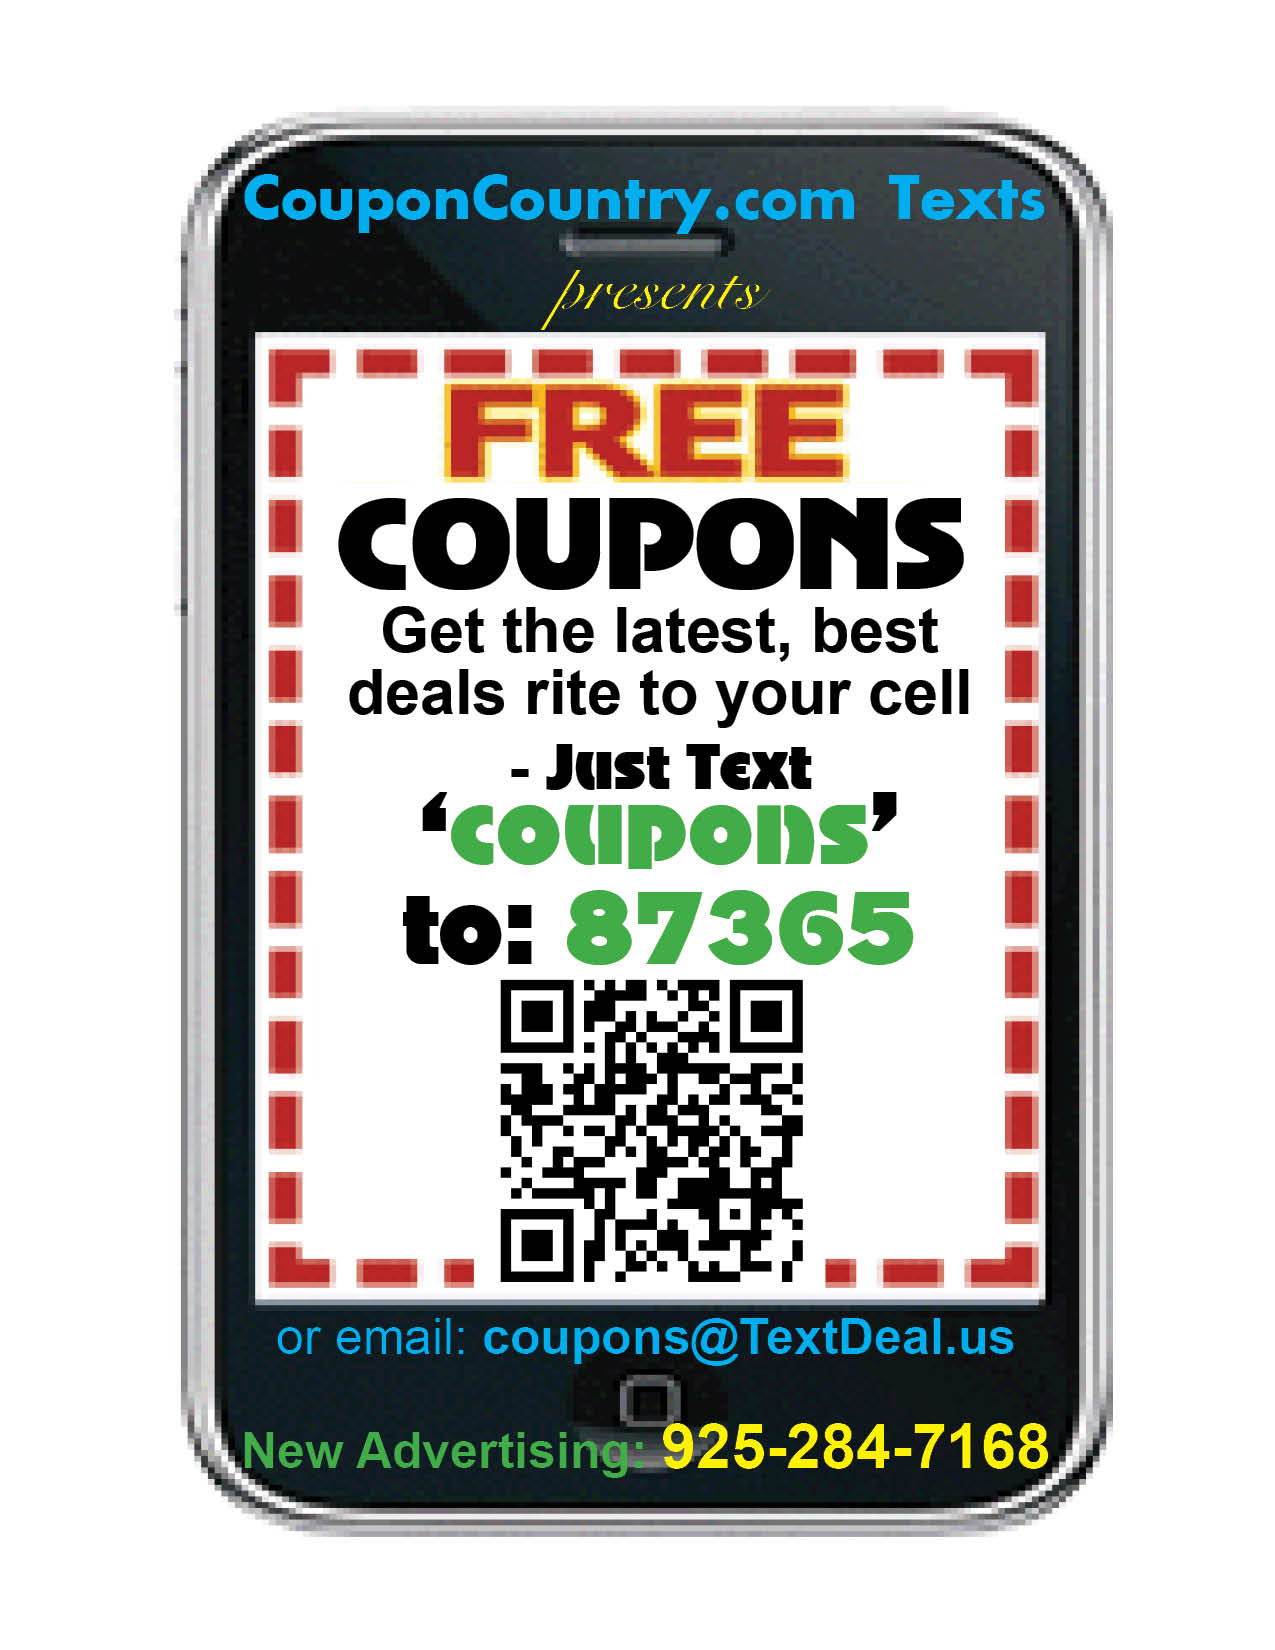 Mississippi casino coupons 3rd black casino counter edition jack non winning